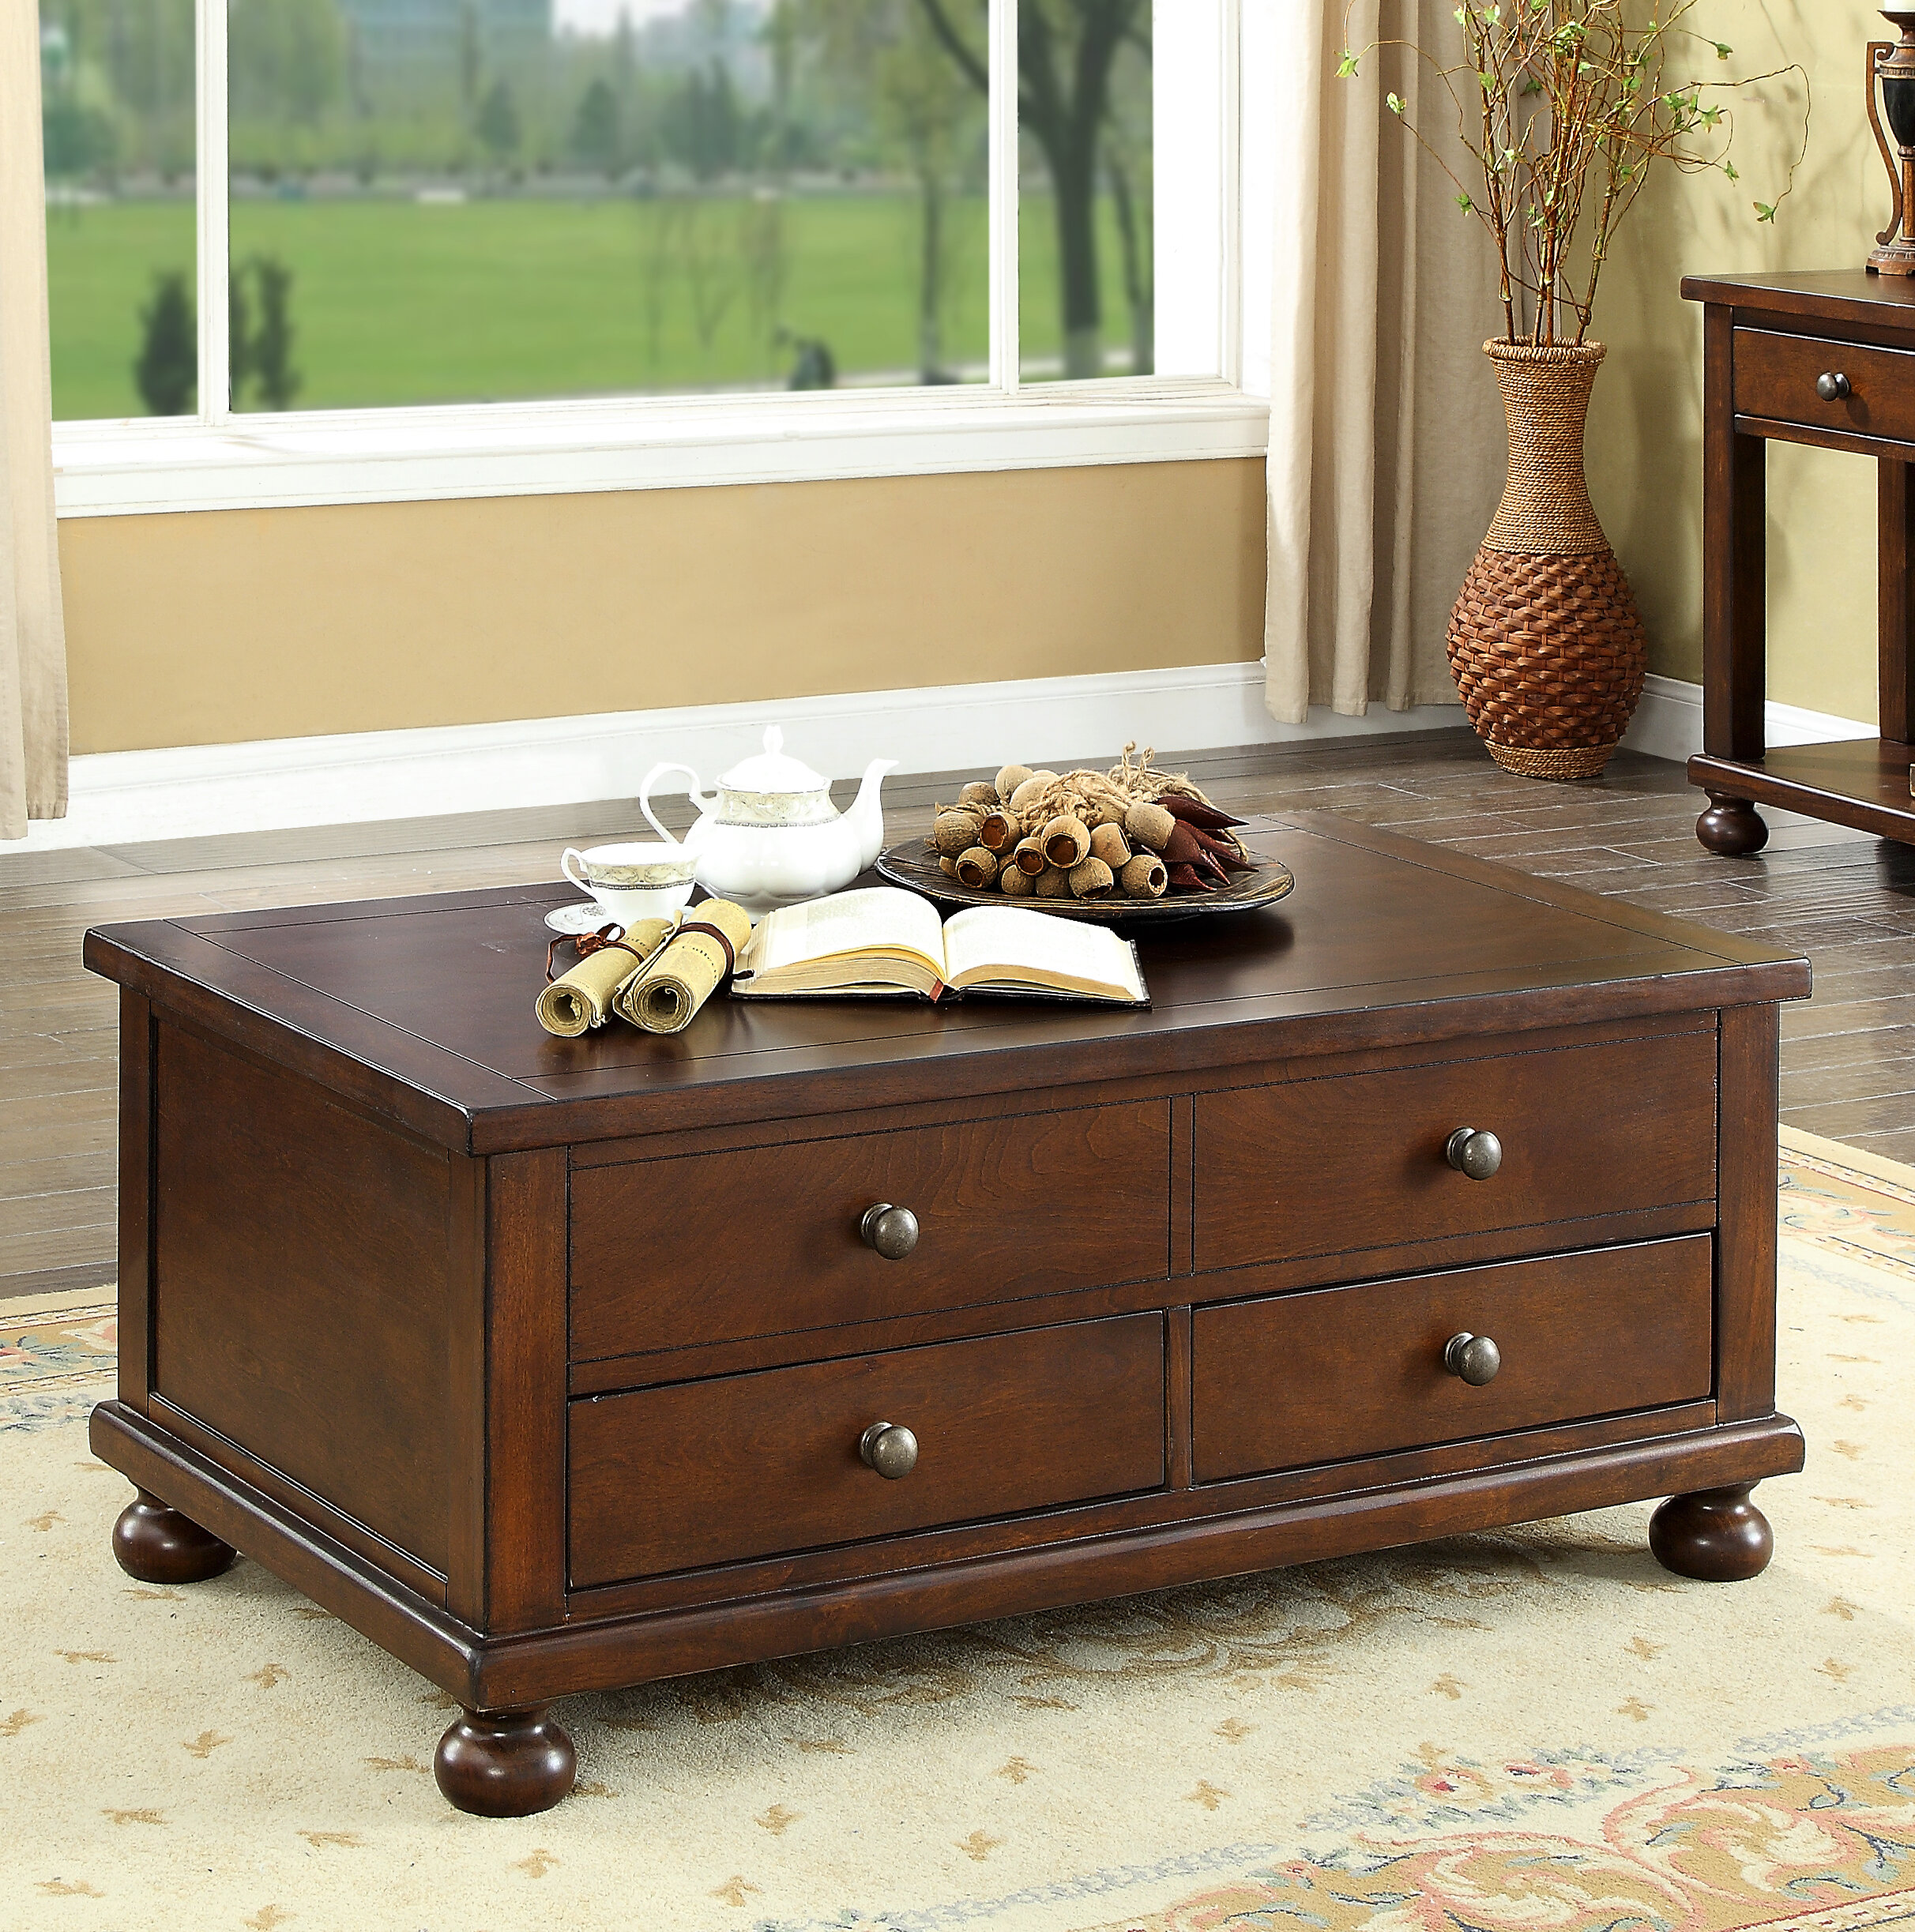 antique cubbies inspirations of tables astounding woodenchest full drawers lift drawer coffee images with top size chest storage bench wooden table plans